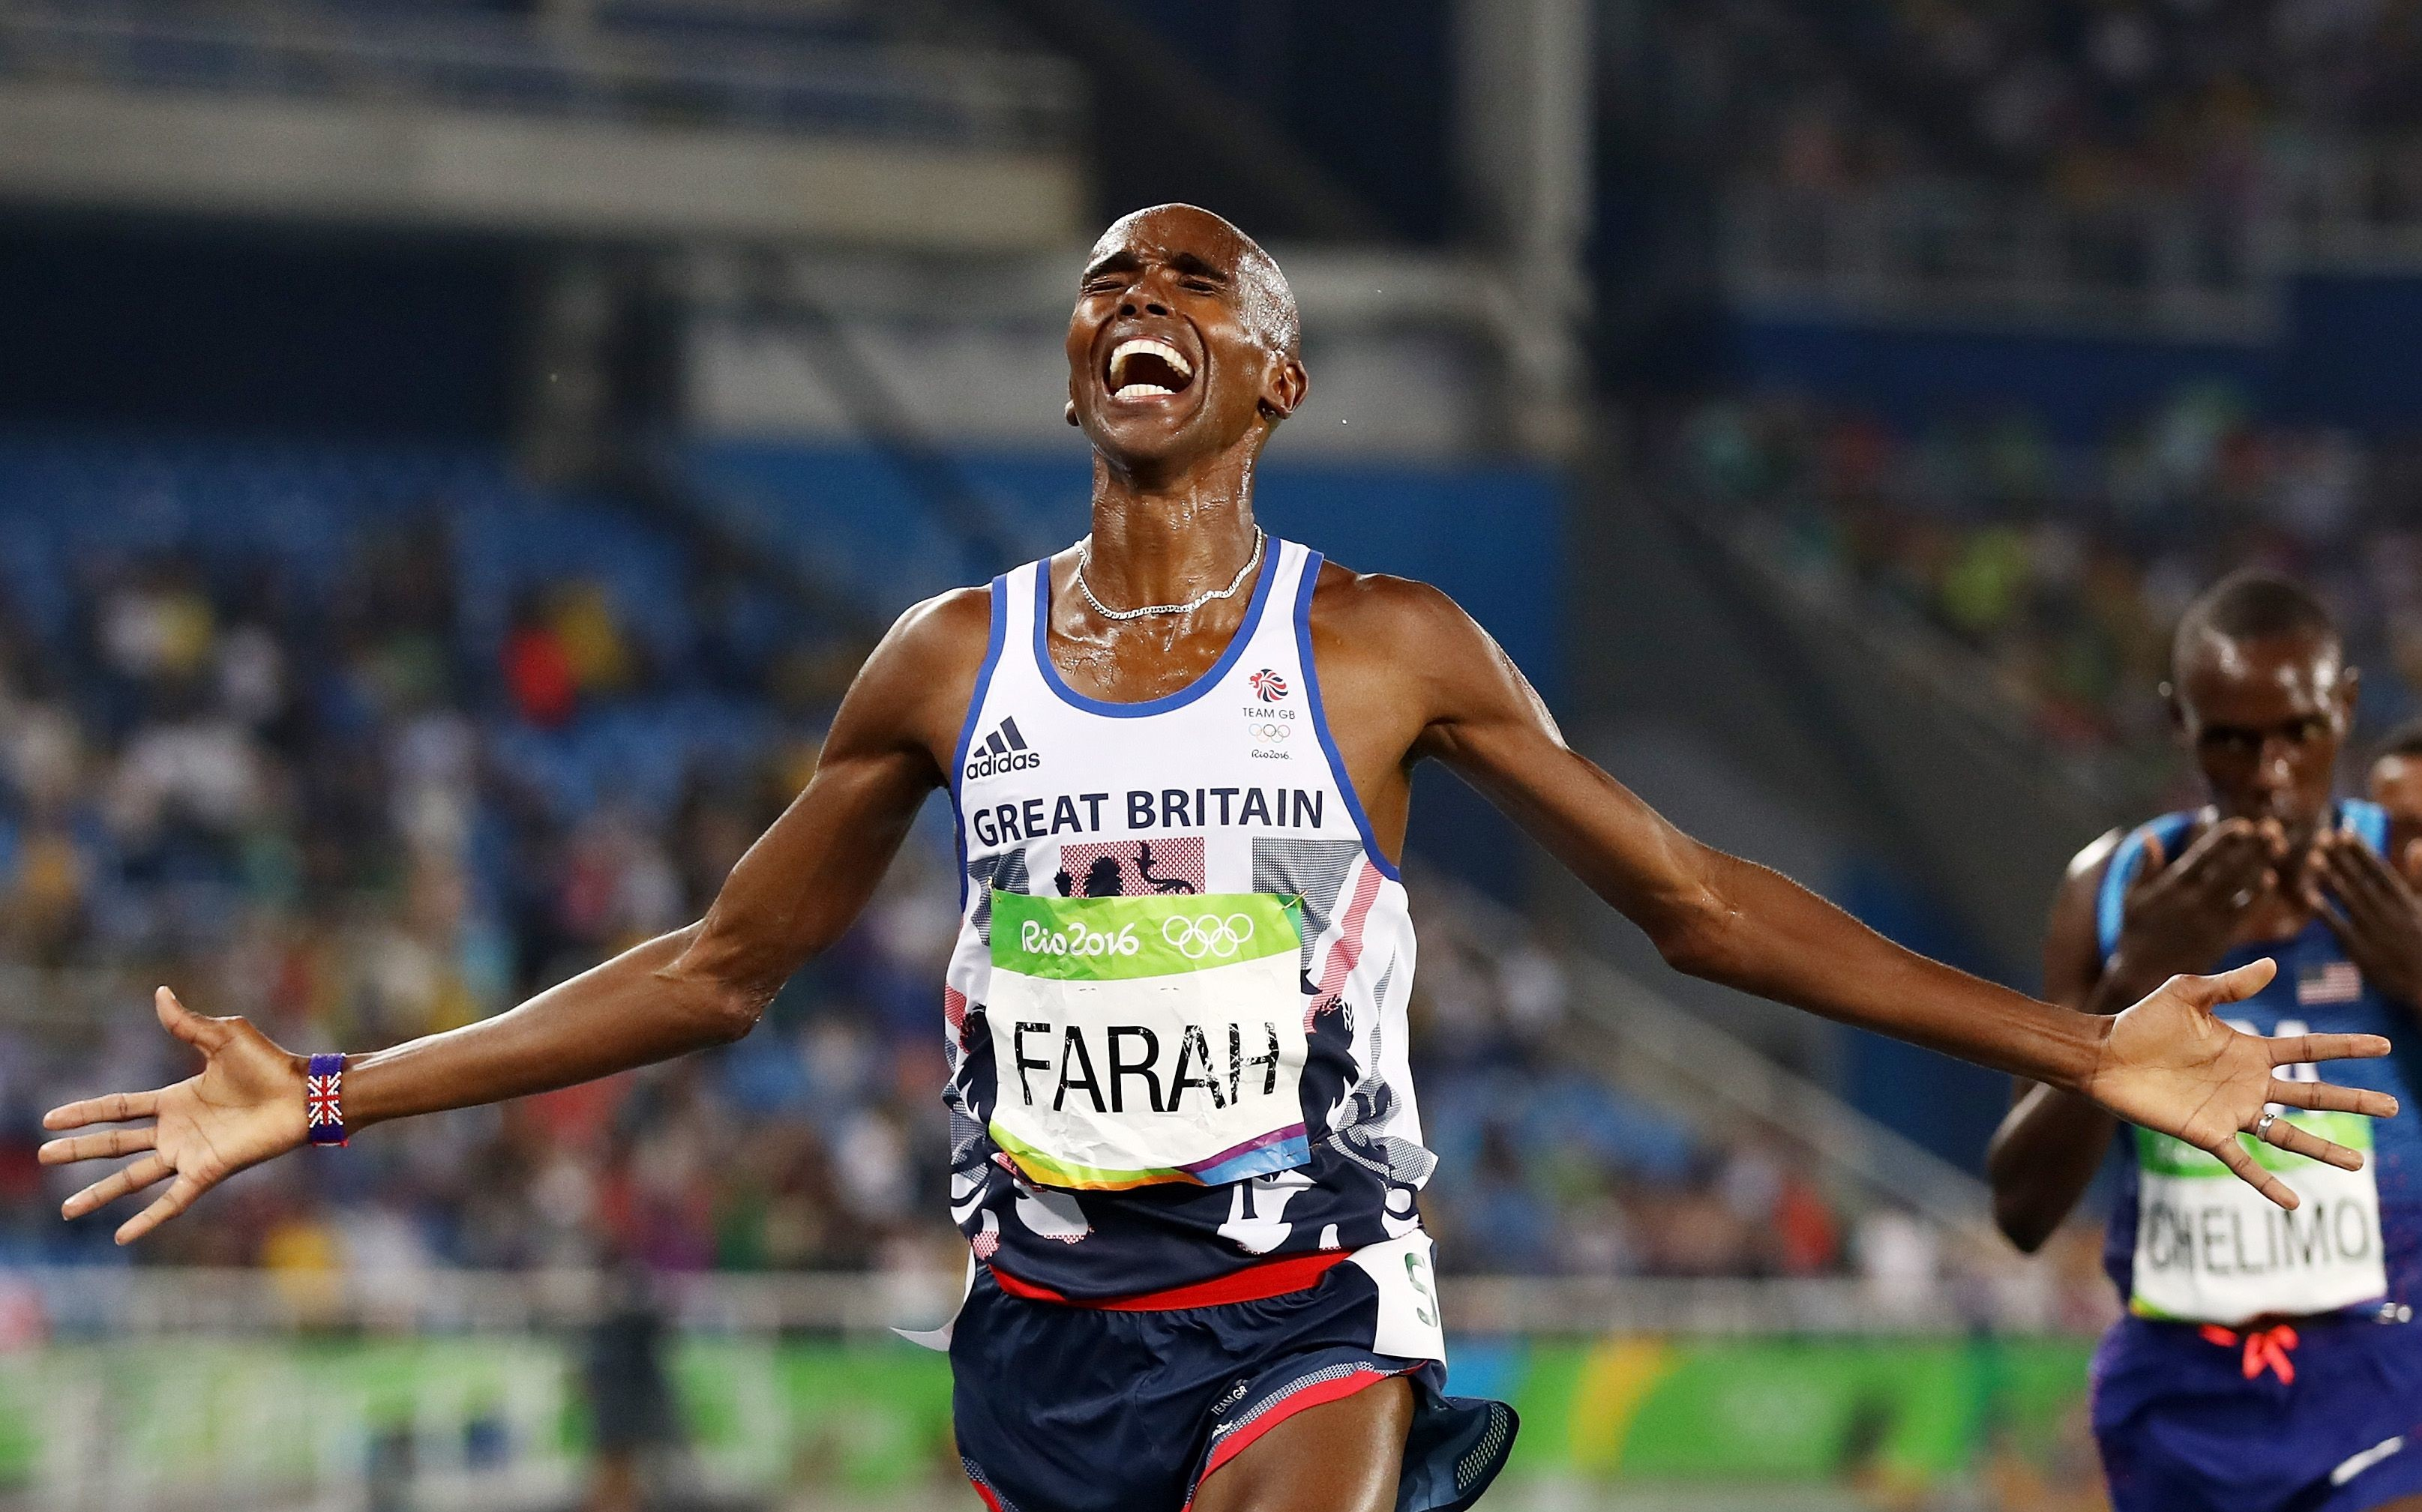 Mo Farah is returning to the track